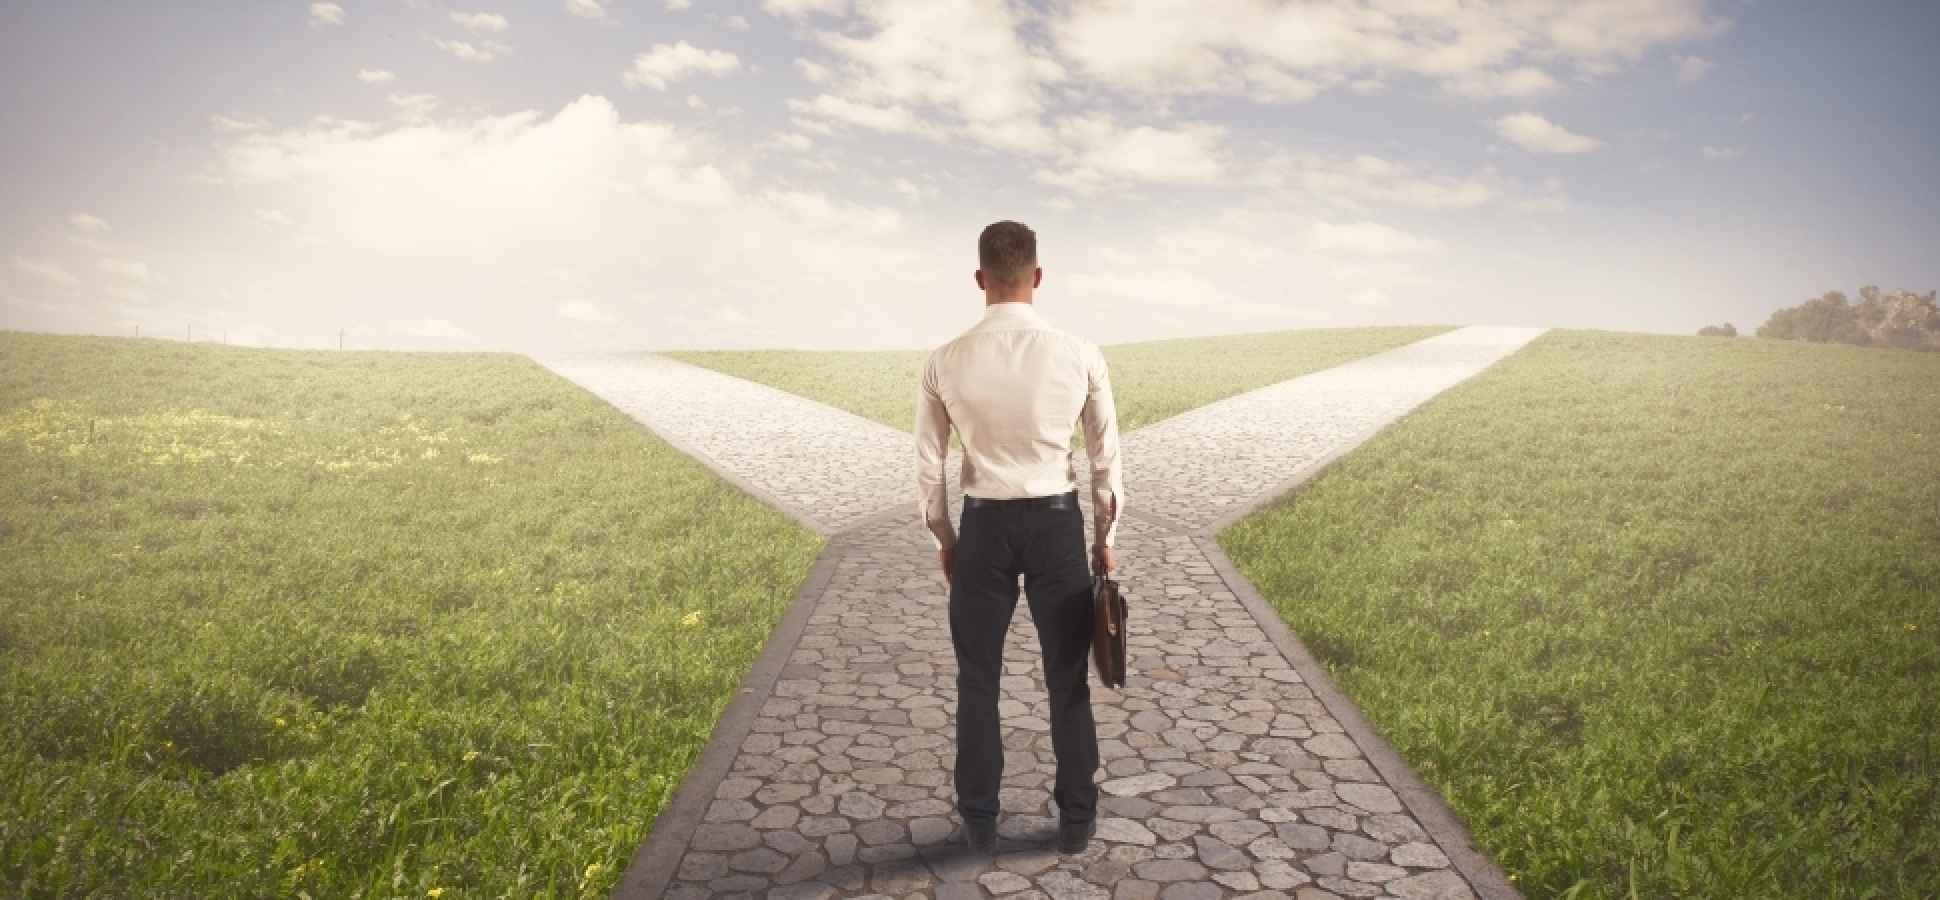 How to Make a Really Tough Business Decision